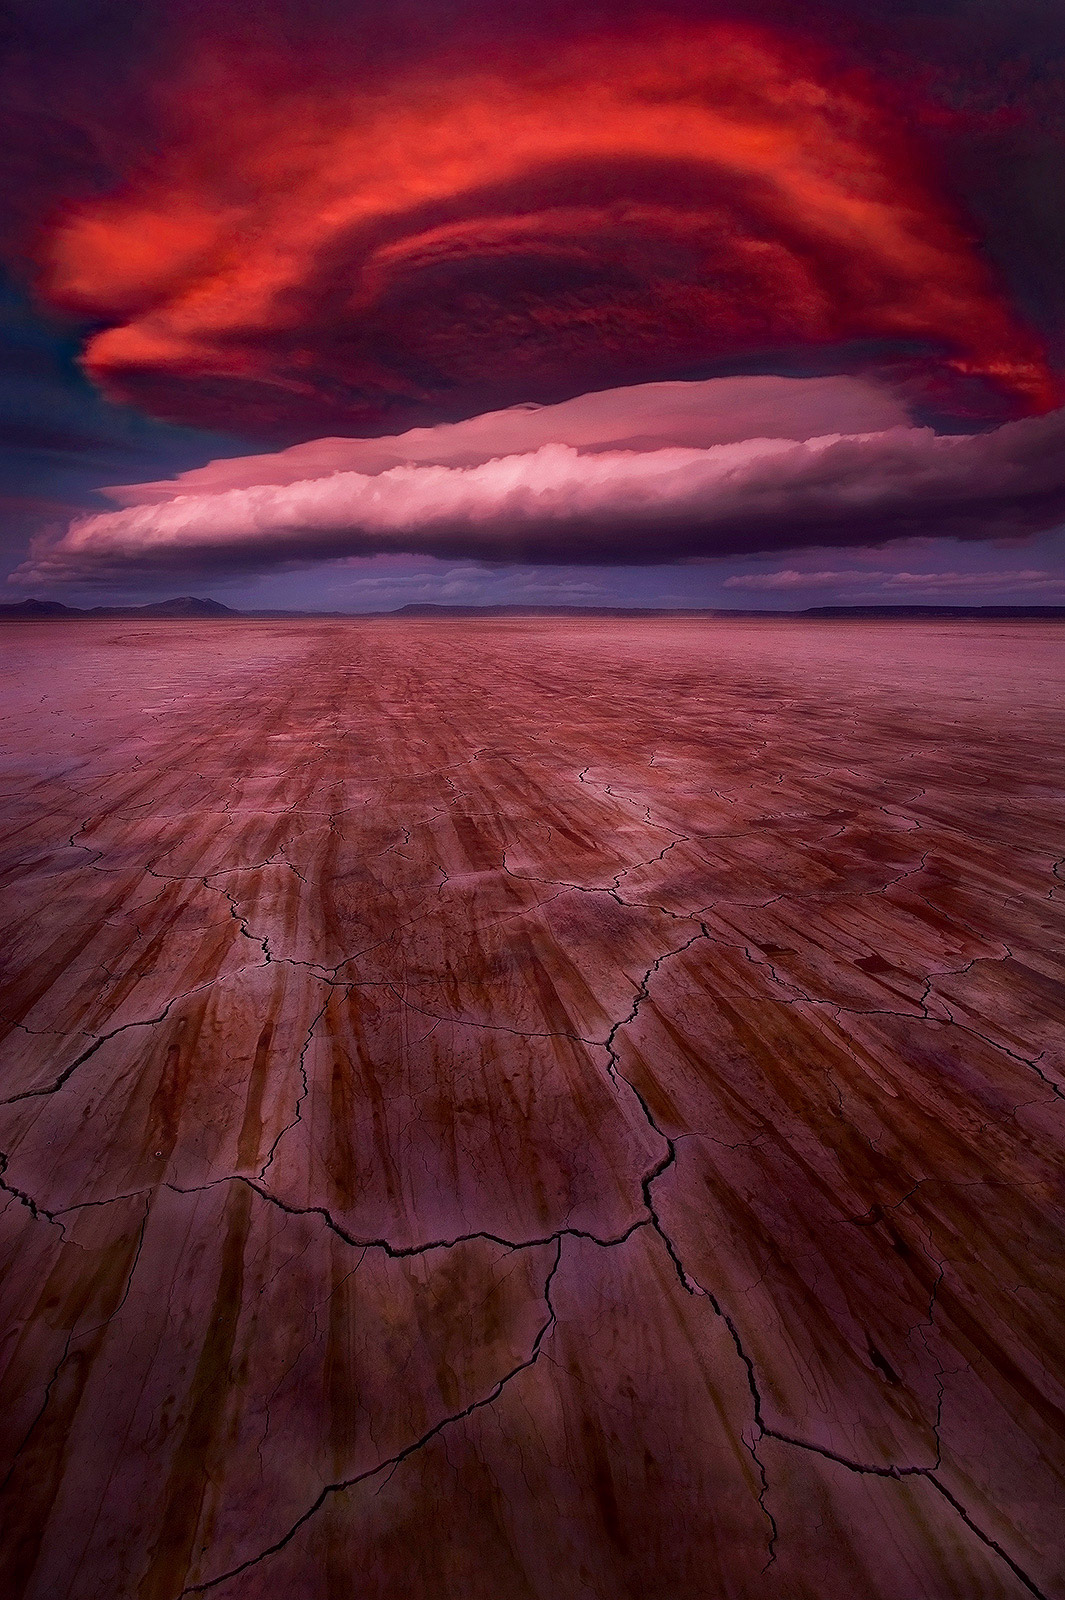 Surreal, Otherworldly, Awesome, Lenticular, sunset, oregon, alvord, desert, storm, photo